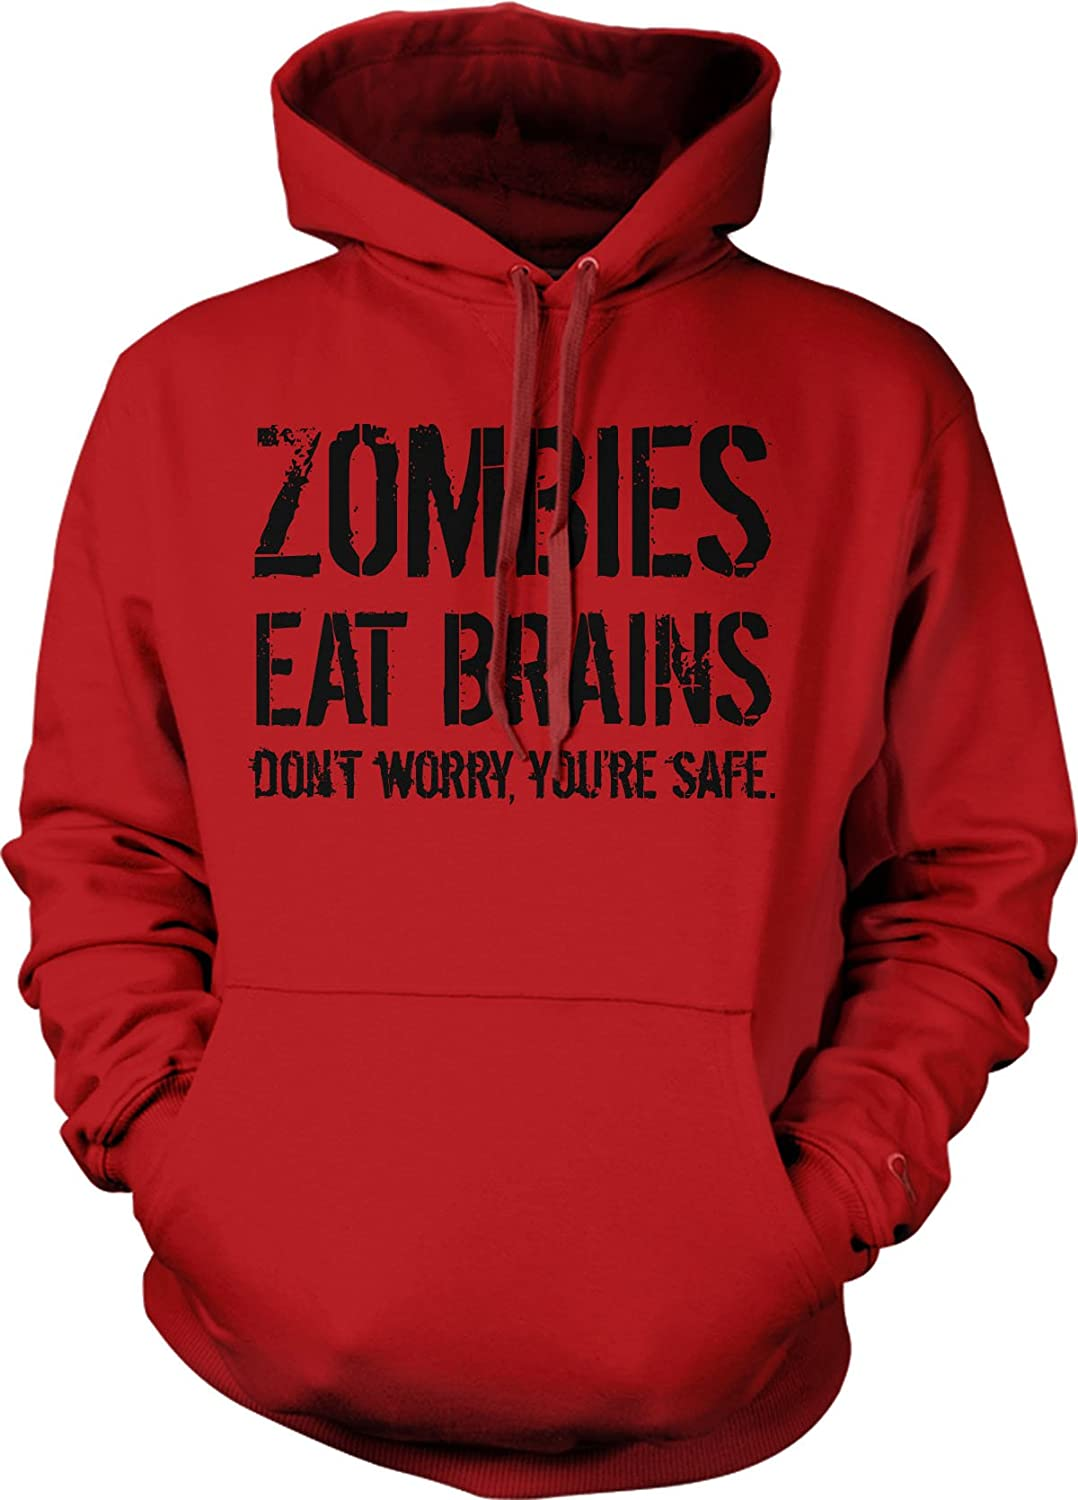 Unisex Zombies Eat Brains So You're Safe Hoodie Funny Undead Outbreak Sweatshirt Crazy Dog Tshirts